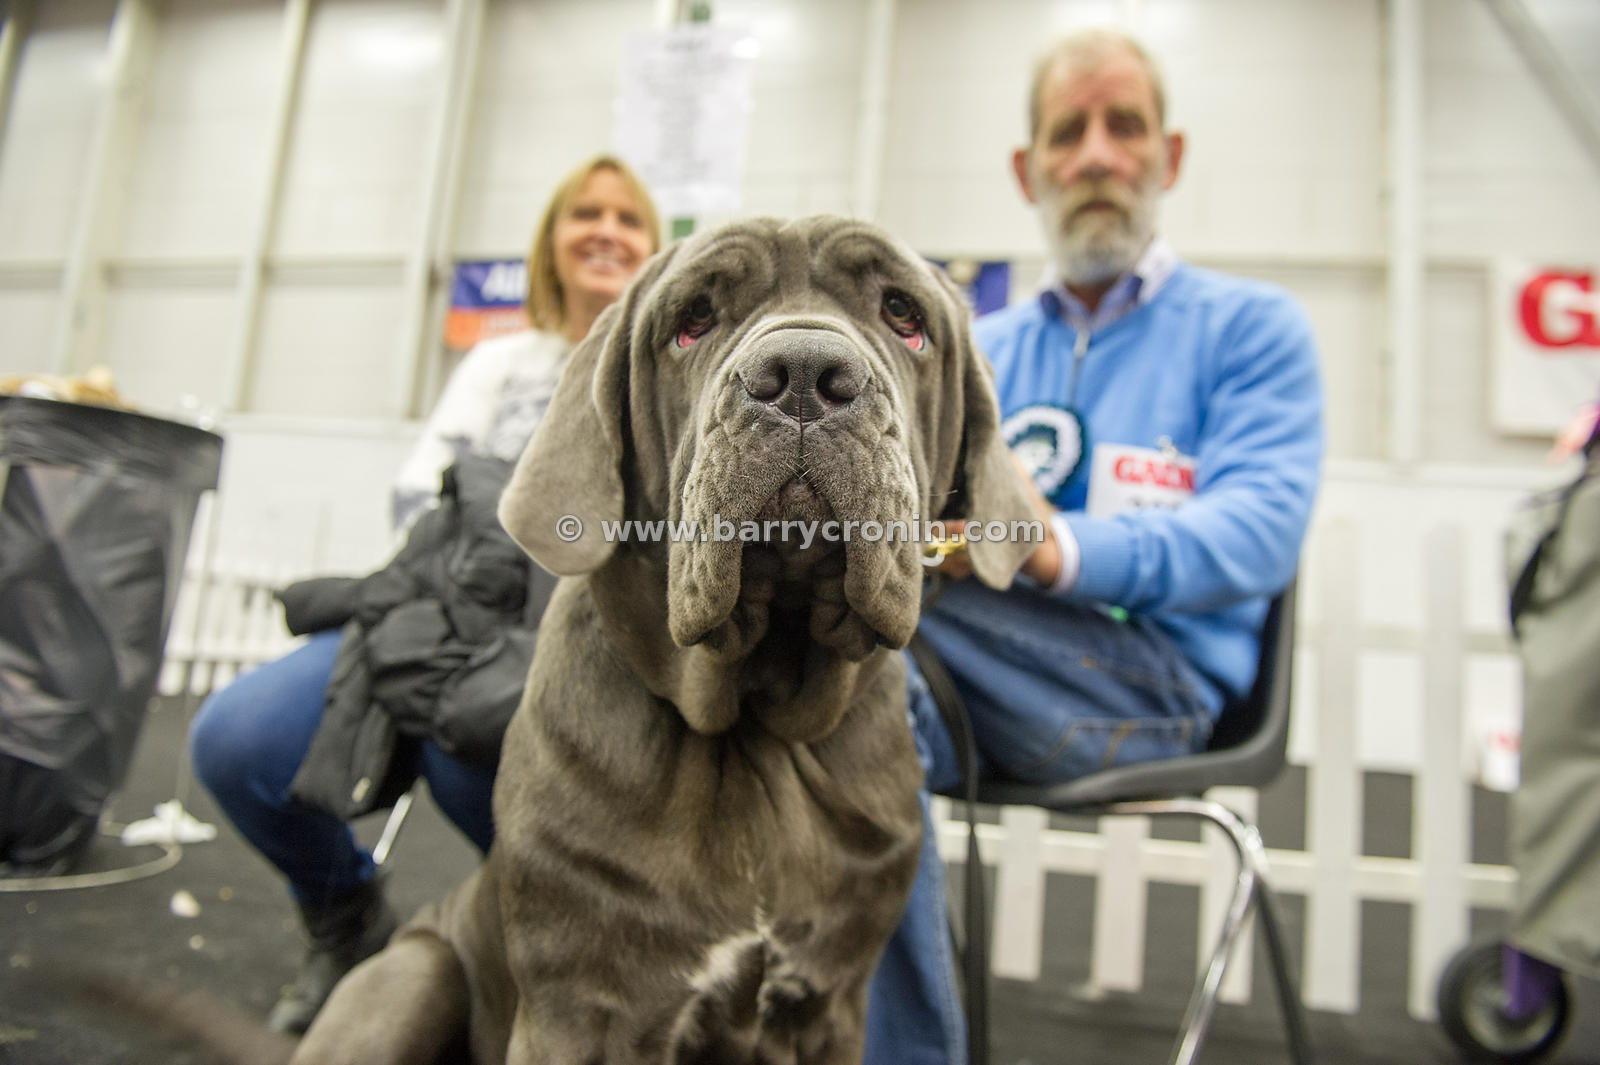 5th October, 2014.IKC (Irish Kennel Club) International show at Cloghran, Dublin. Pictured is 10 month old 'Calicio' a Neopol...